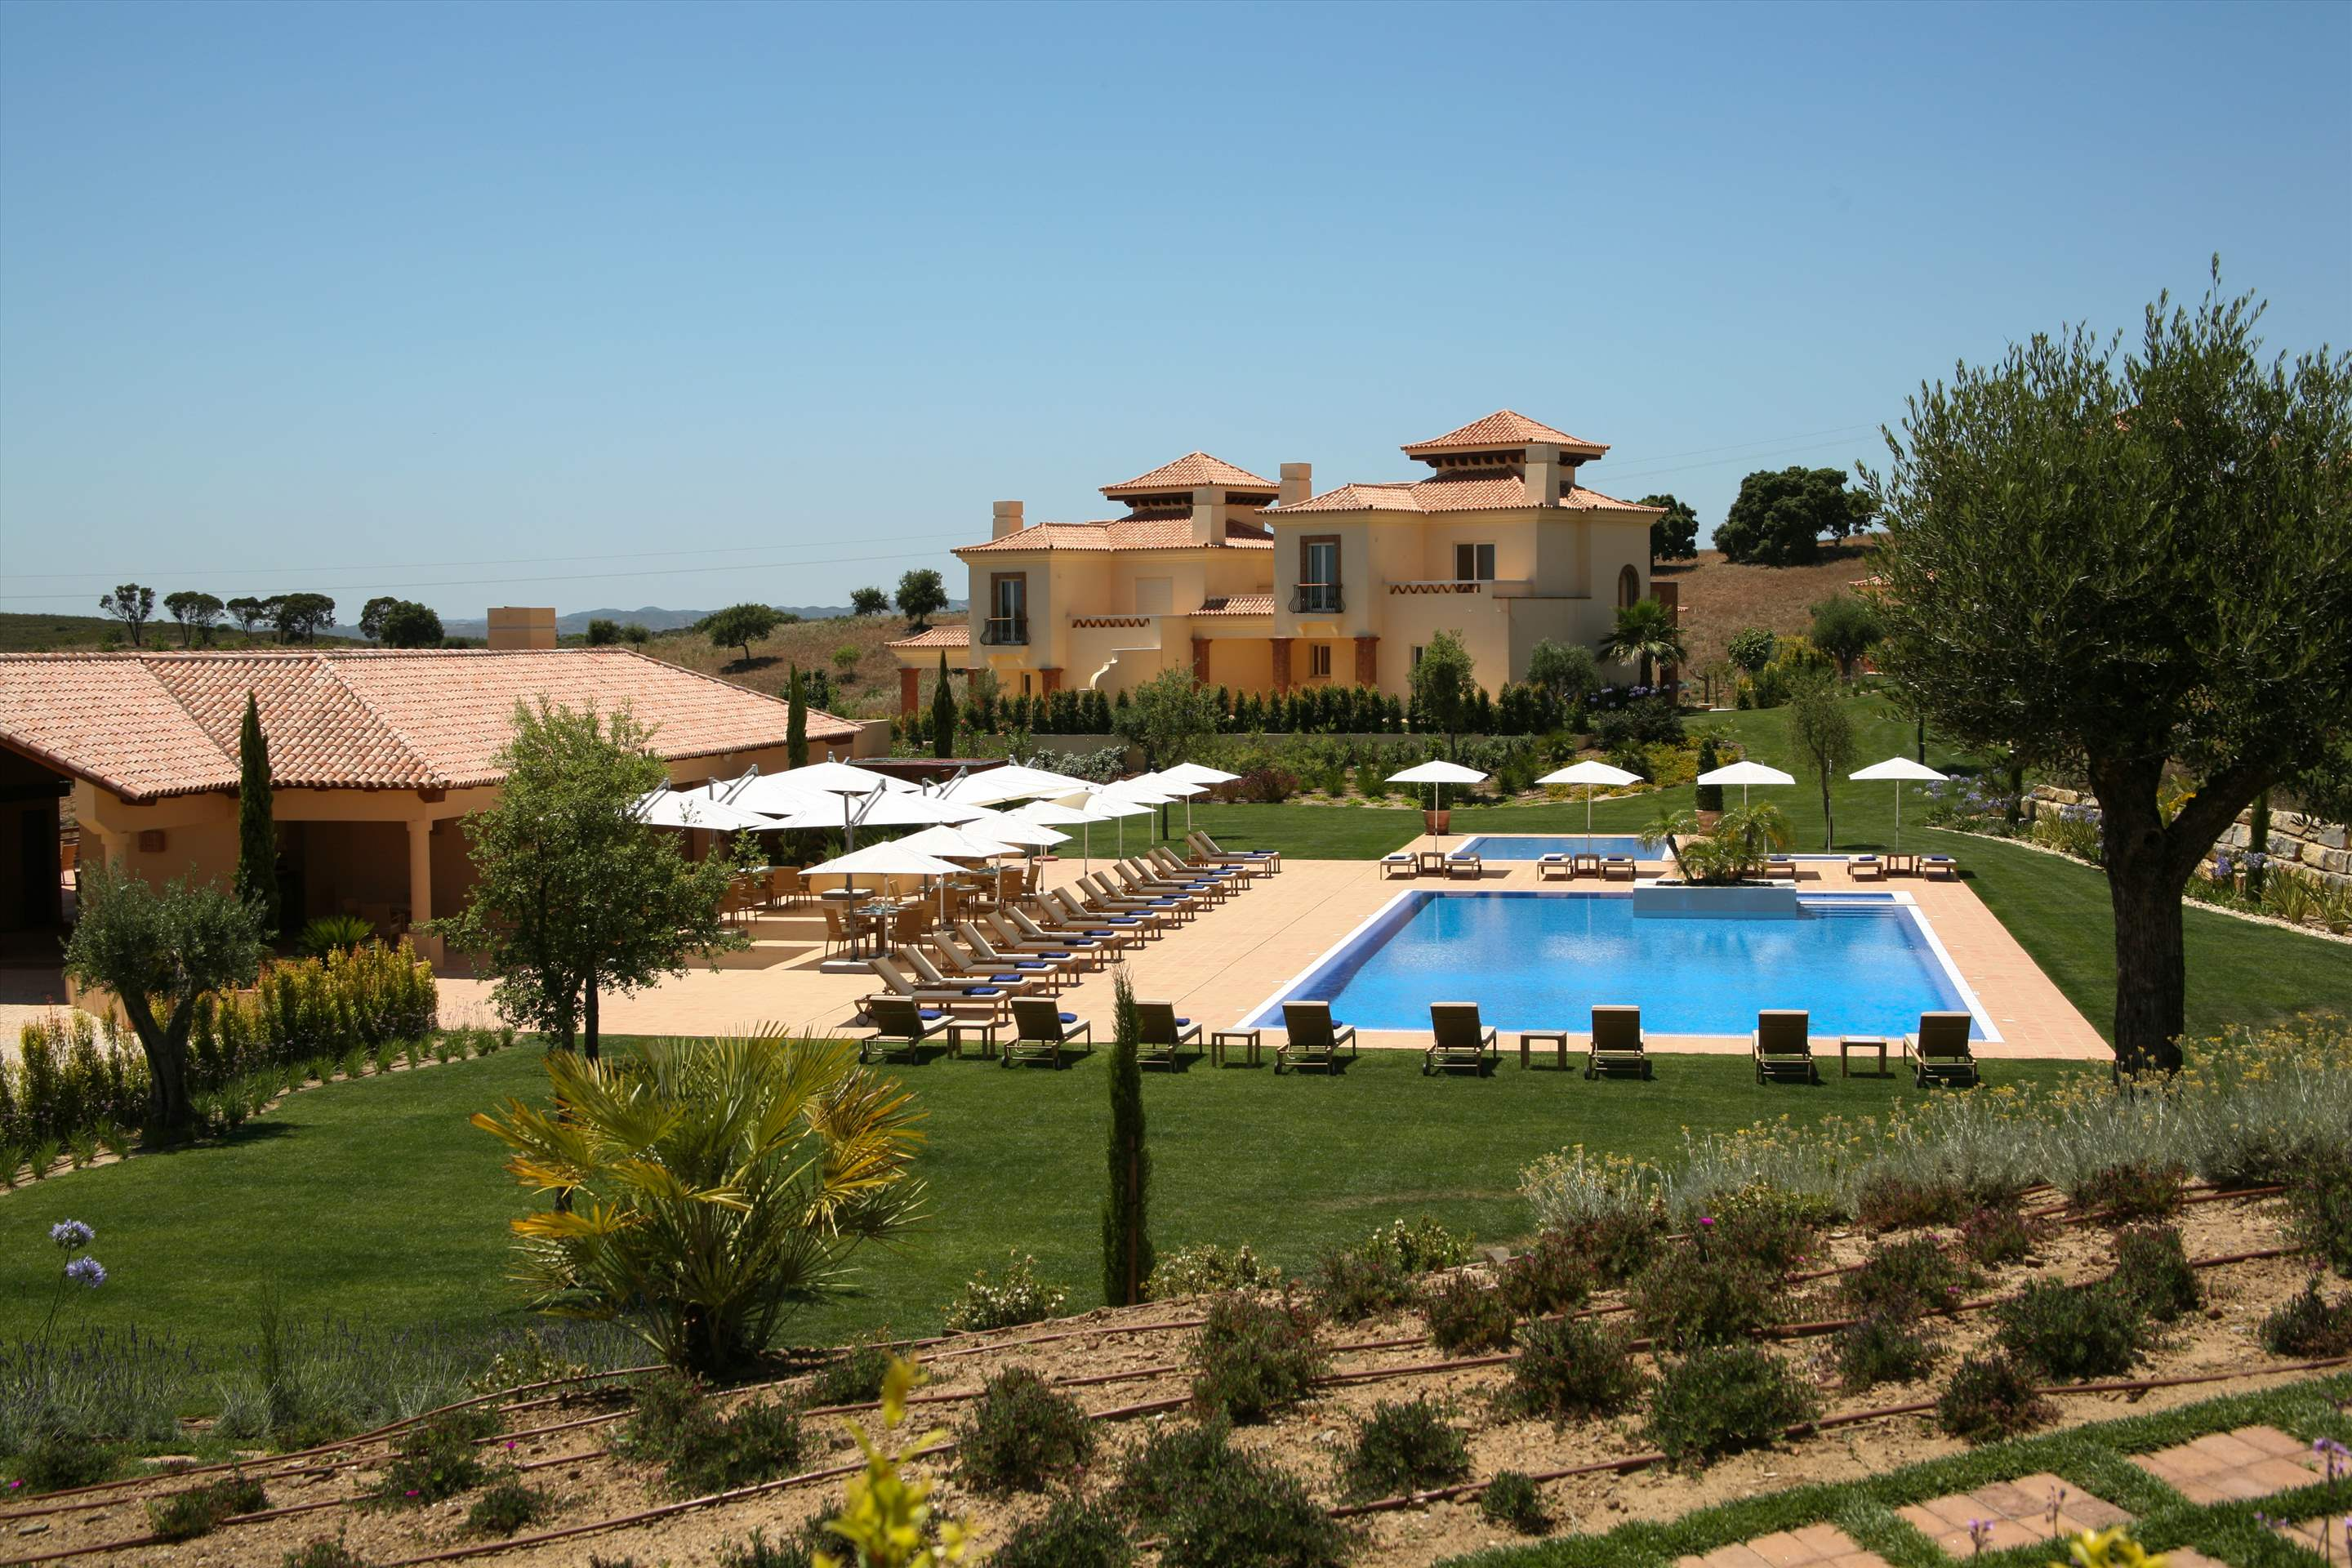 Monte Rei One Bedroom Linked Villa, 1 bedroom villa in Monte Rei Country Club, Algarve Photo #9